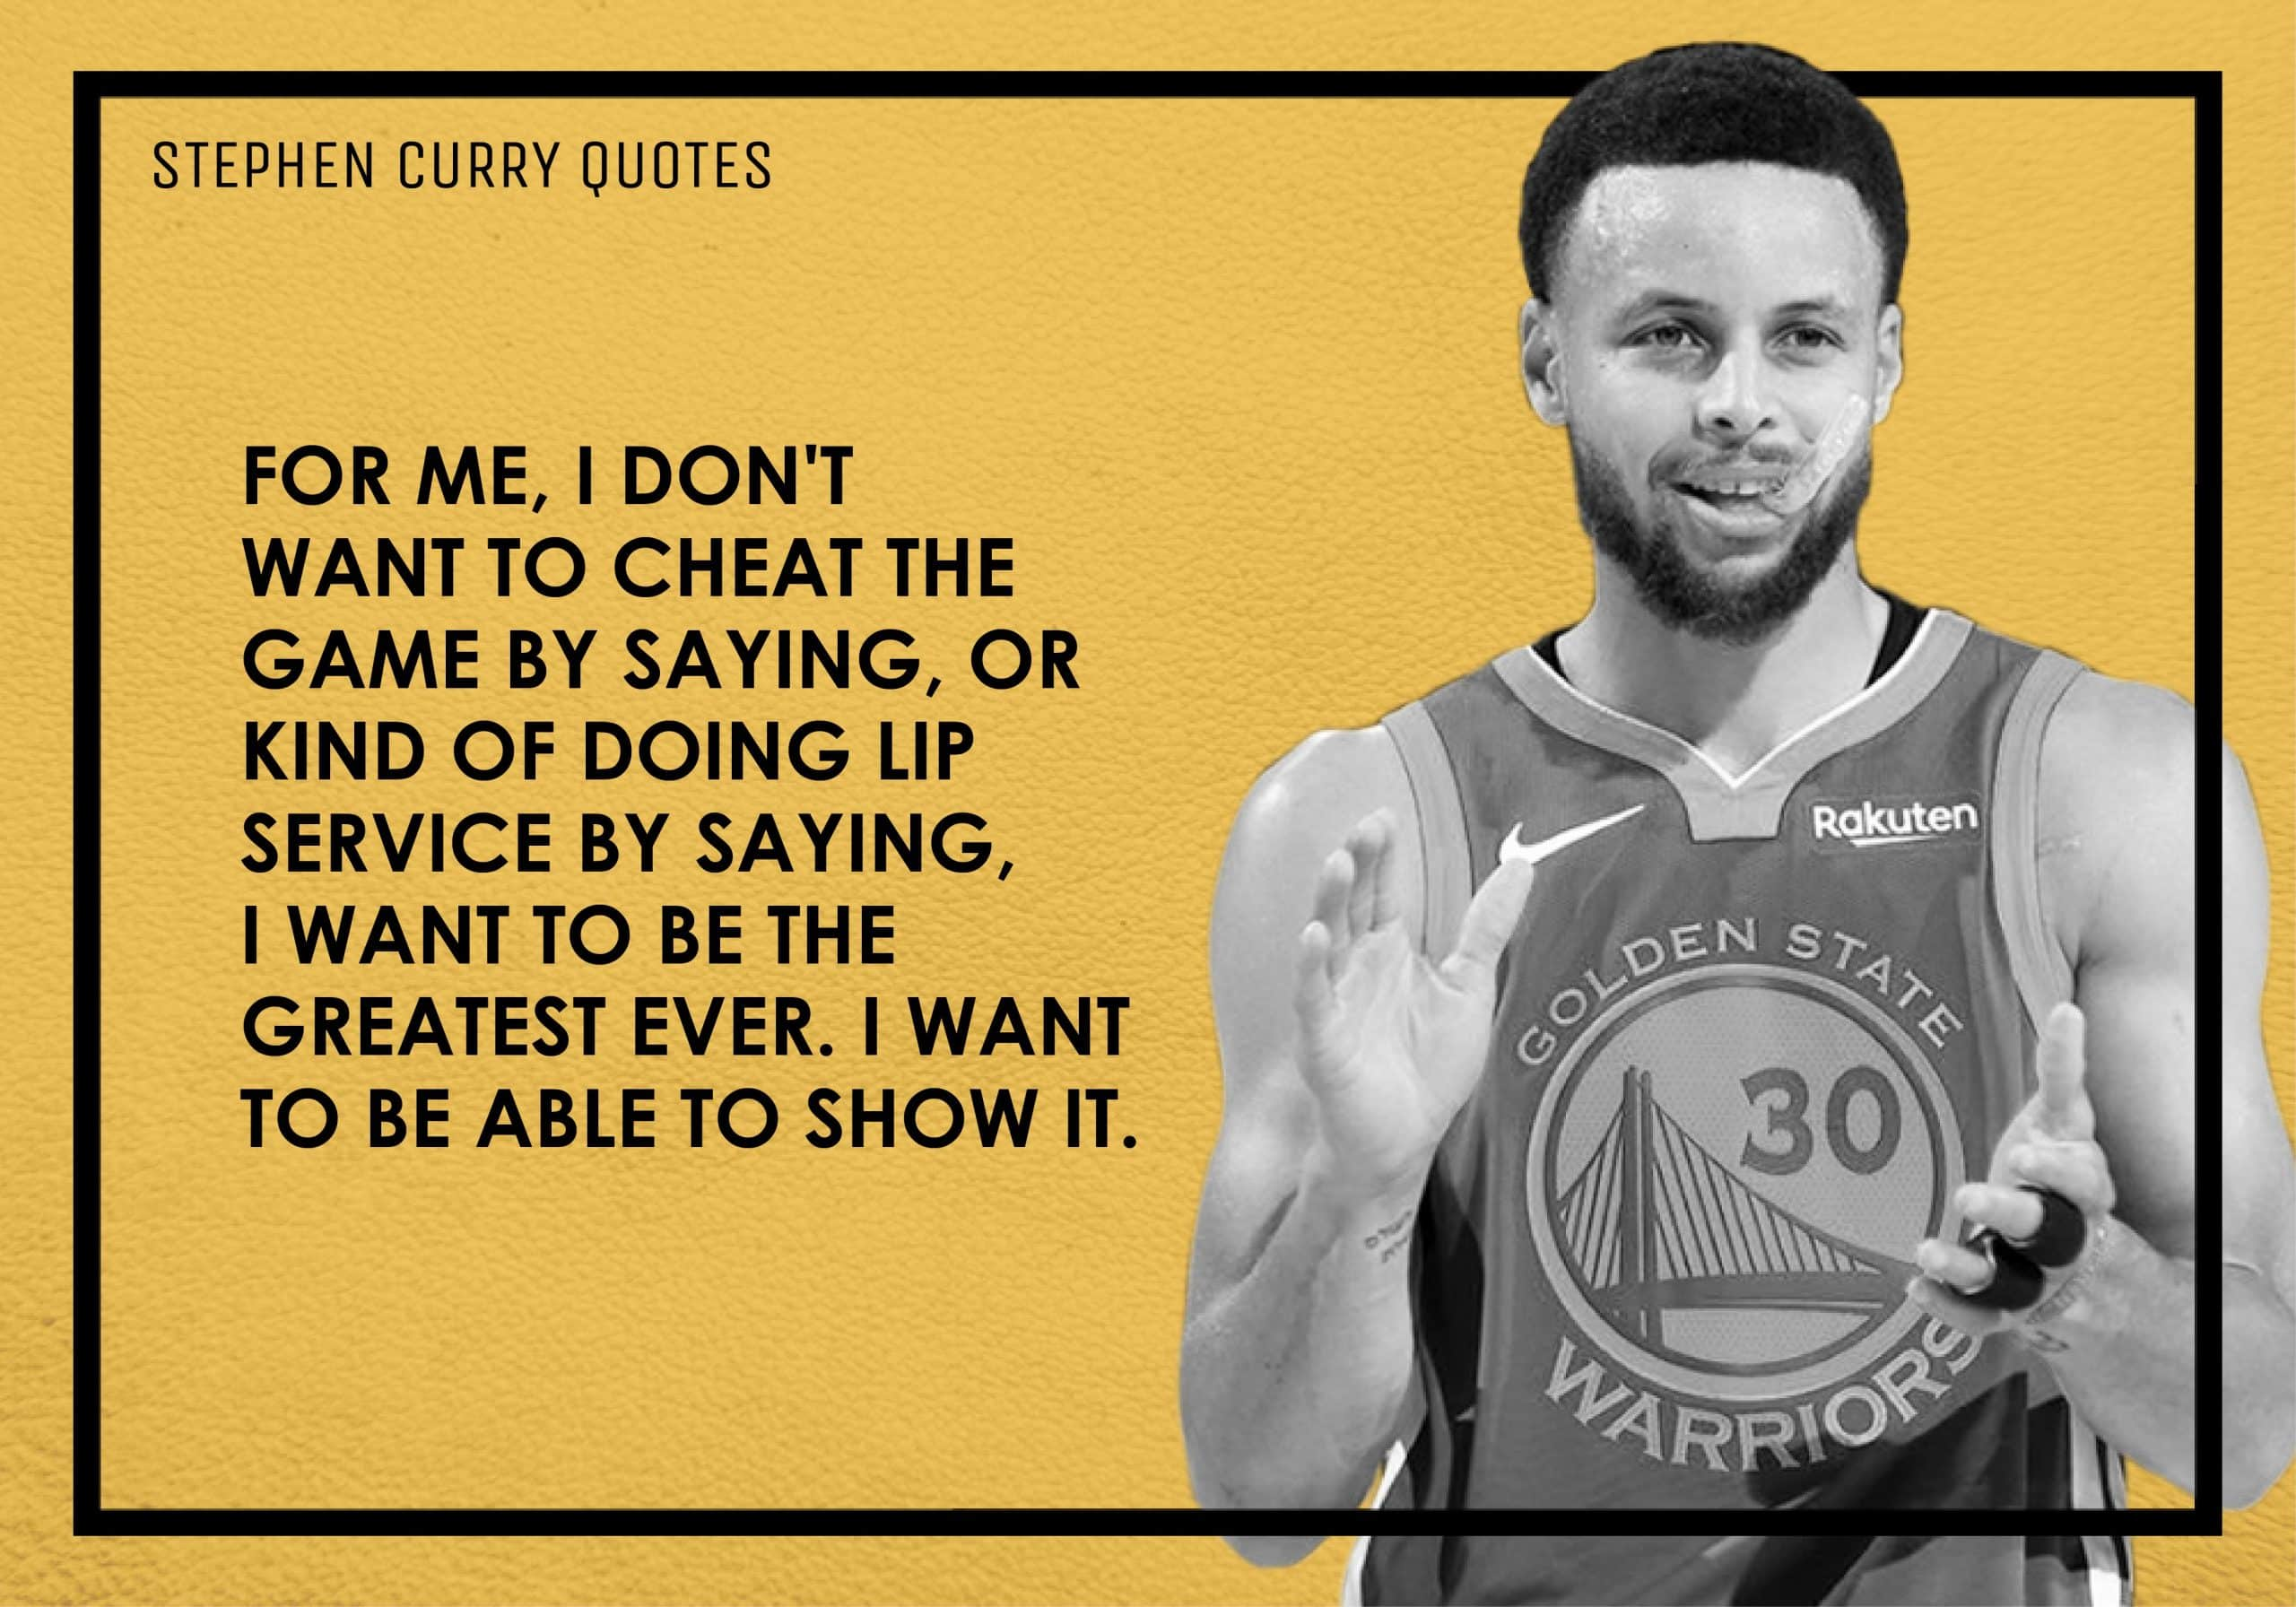 Stephen Curry Quotes (6)